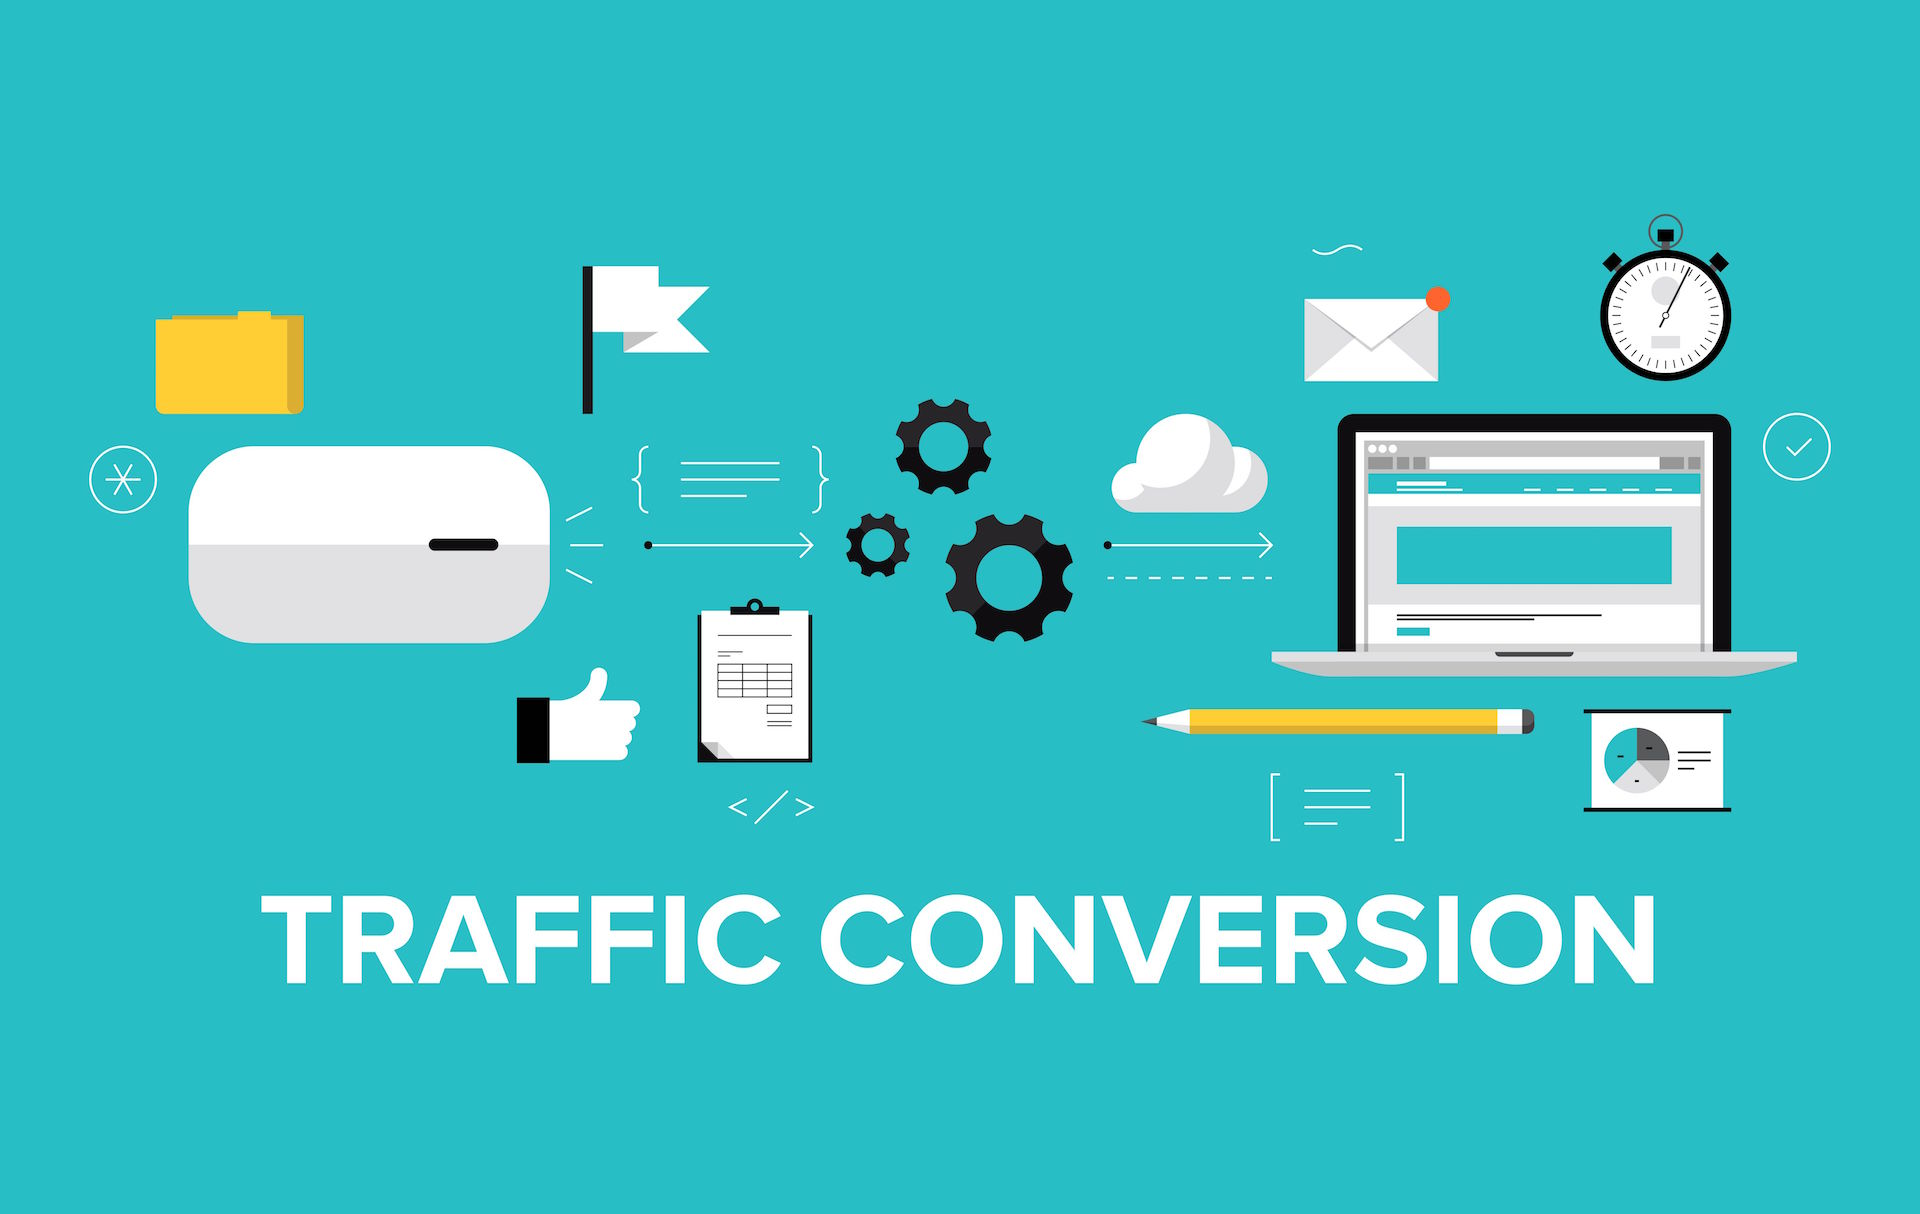 5 Tips to Drive More Traffic From Social Media